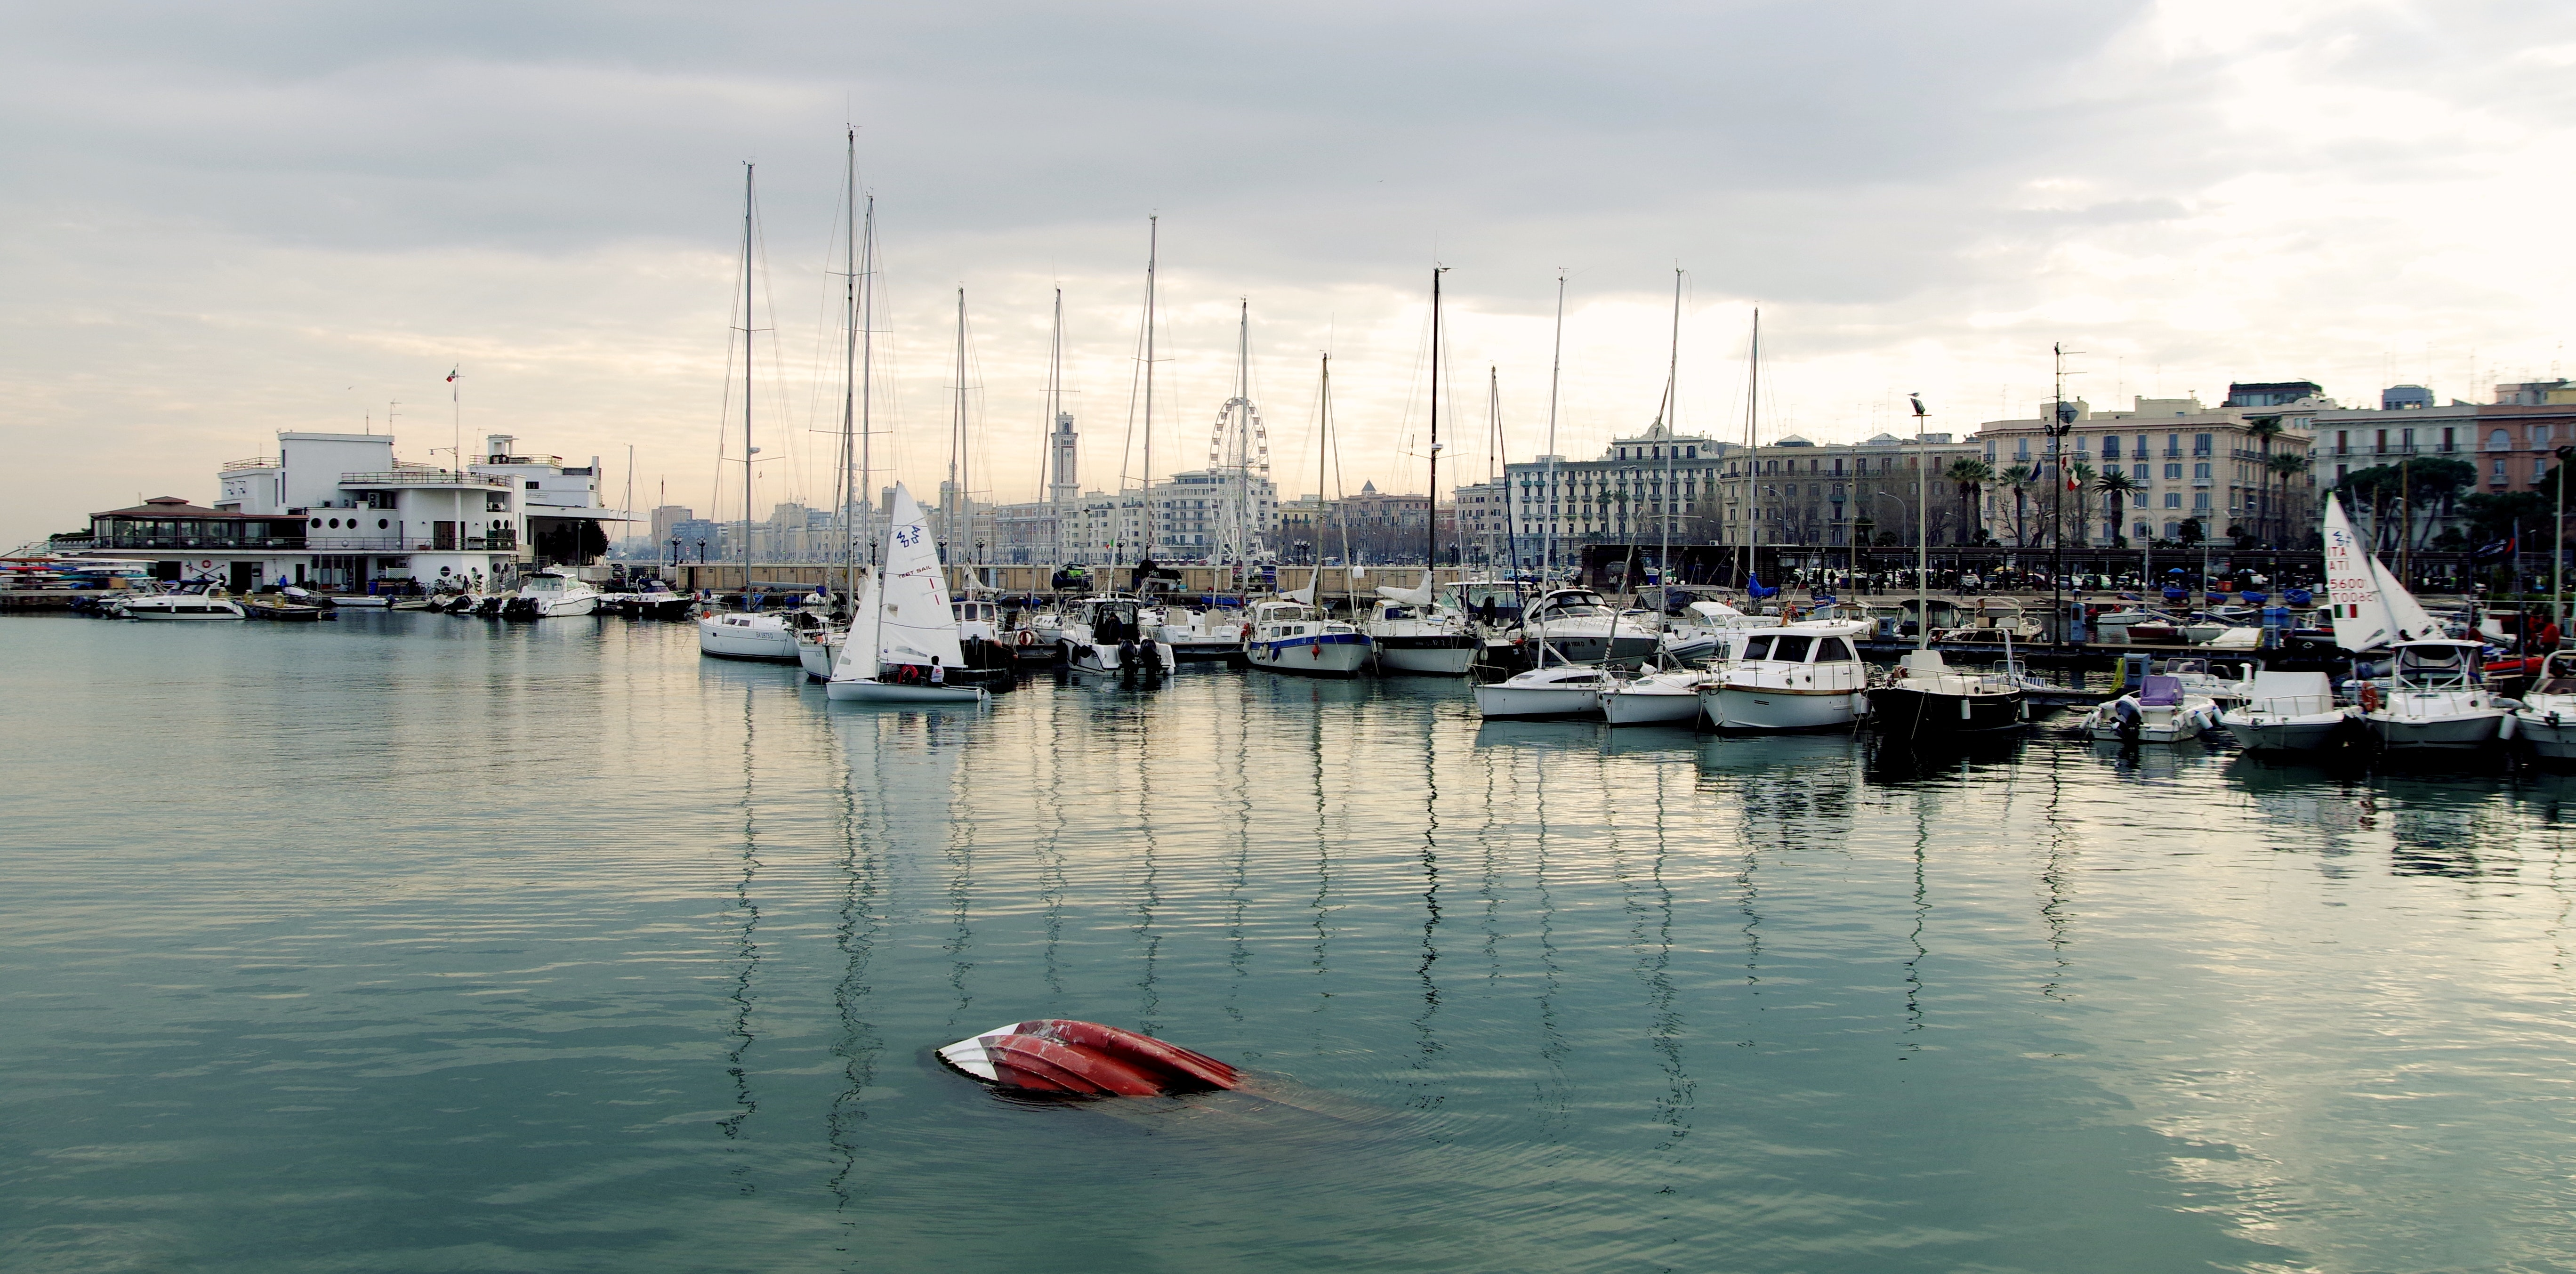 White power boat and yacht parked on body of water photo